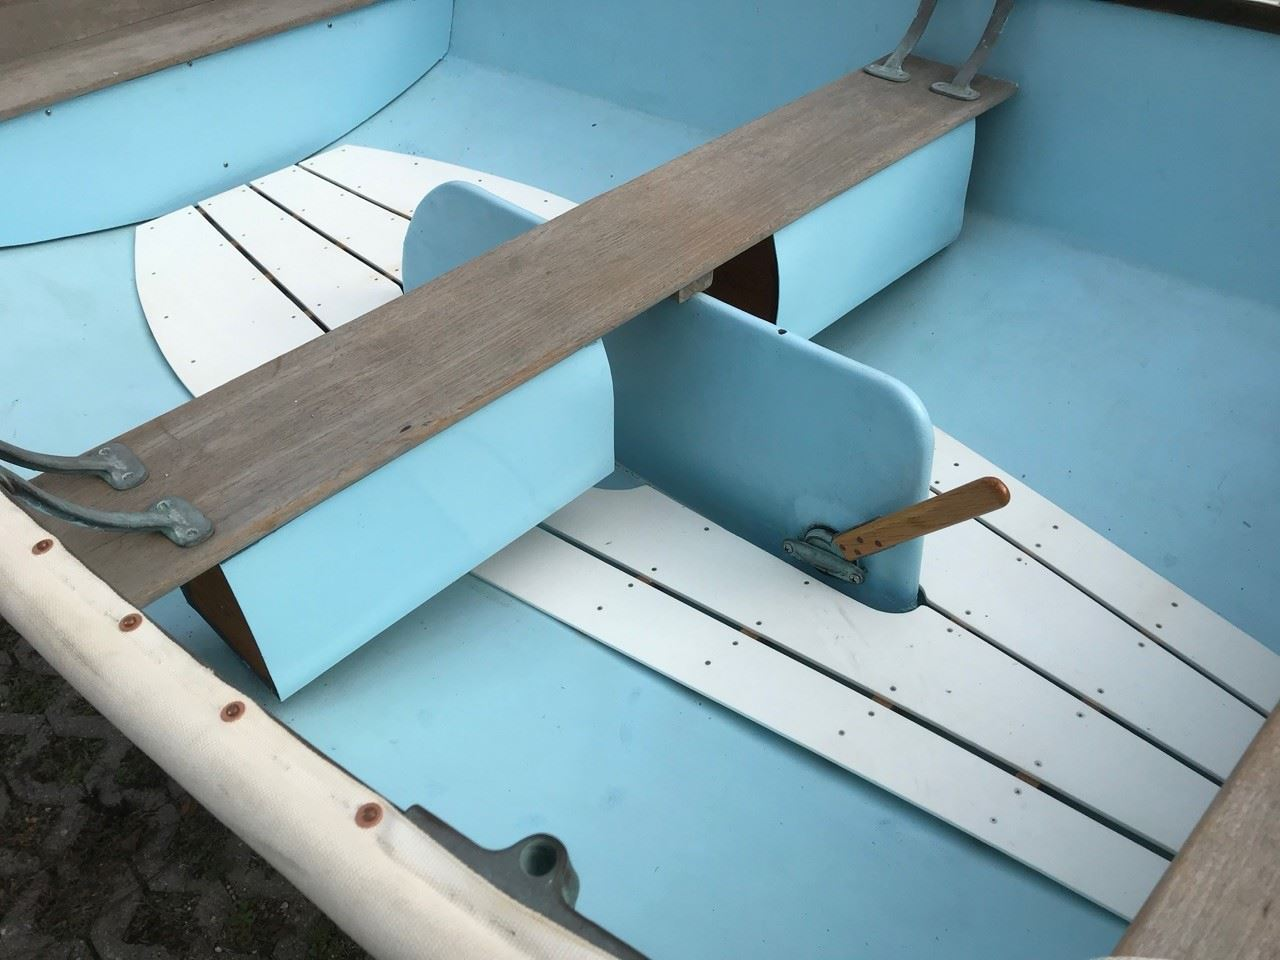 Dyer Dhow dinghy with sailing rig - 2